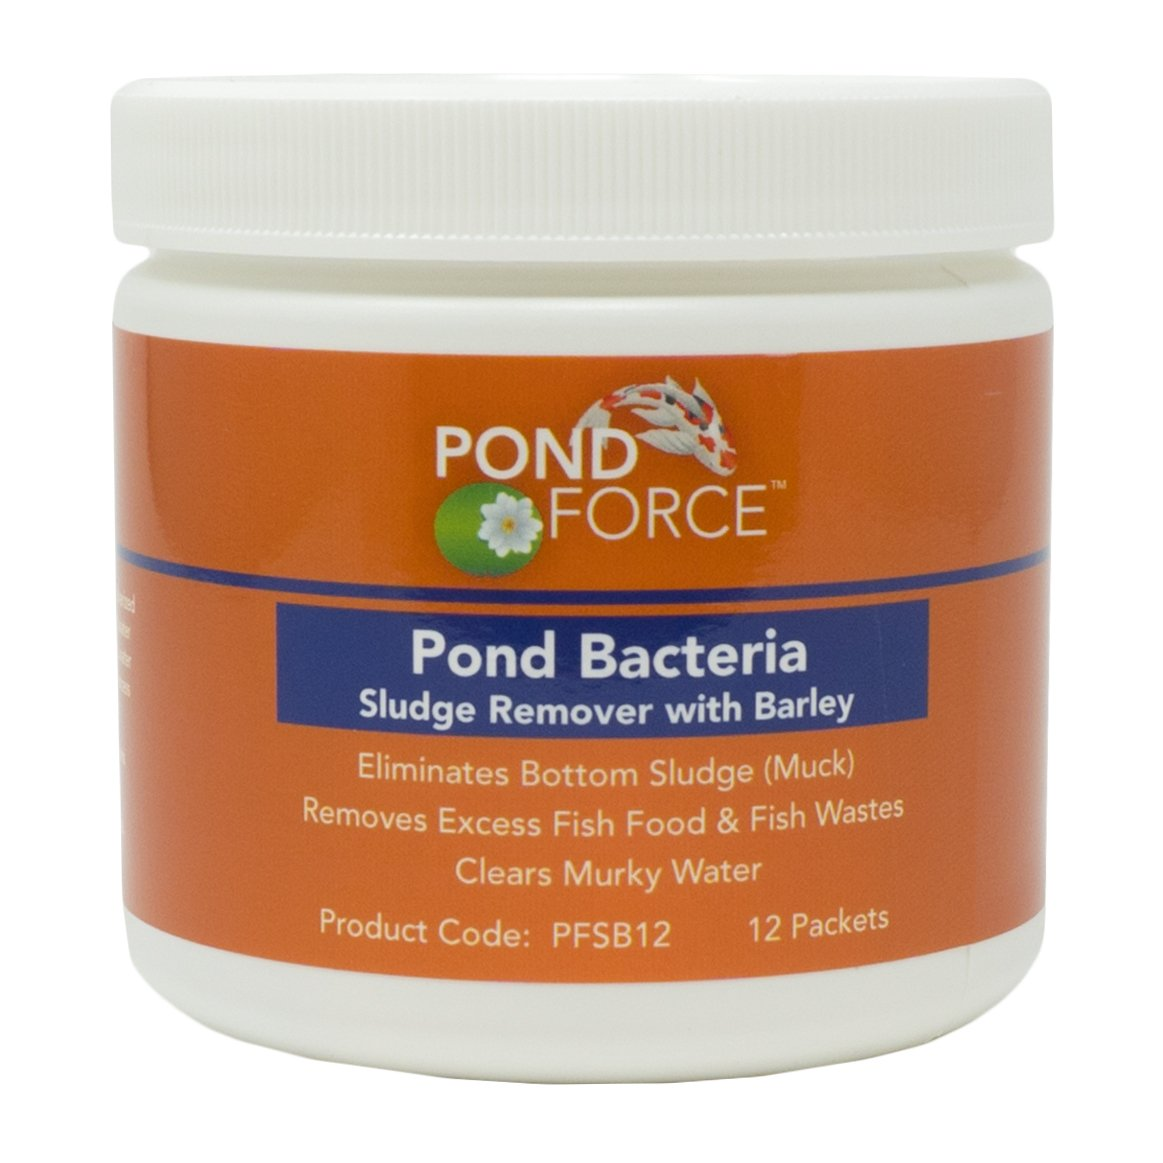 Pond Force Pond Bacteria Sludge Remover with Barley by Pond Force